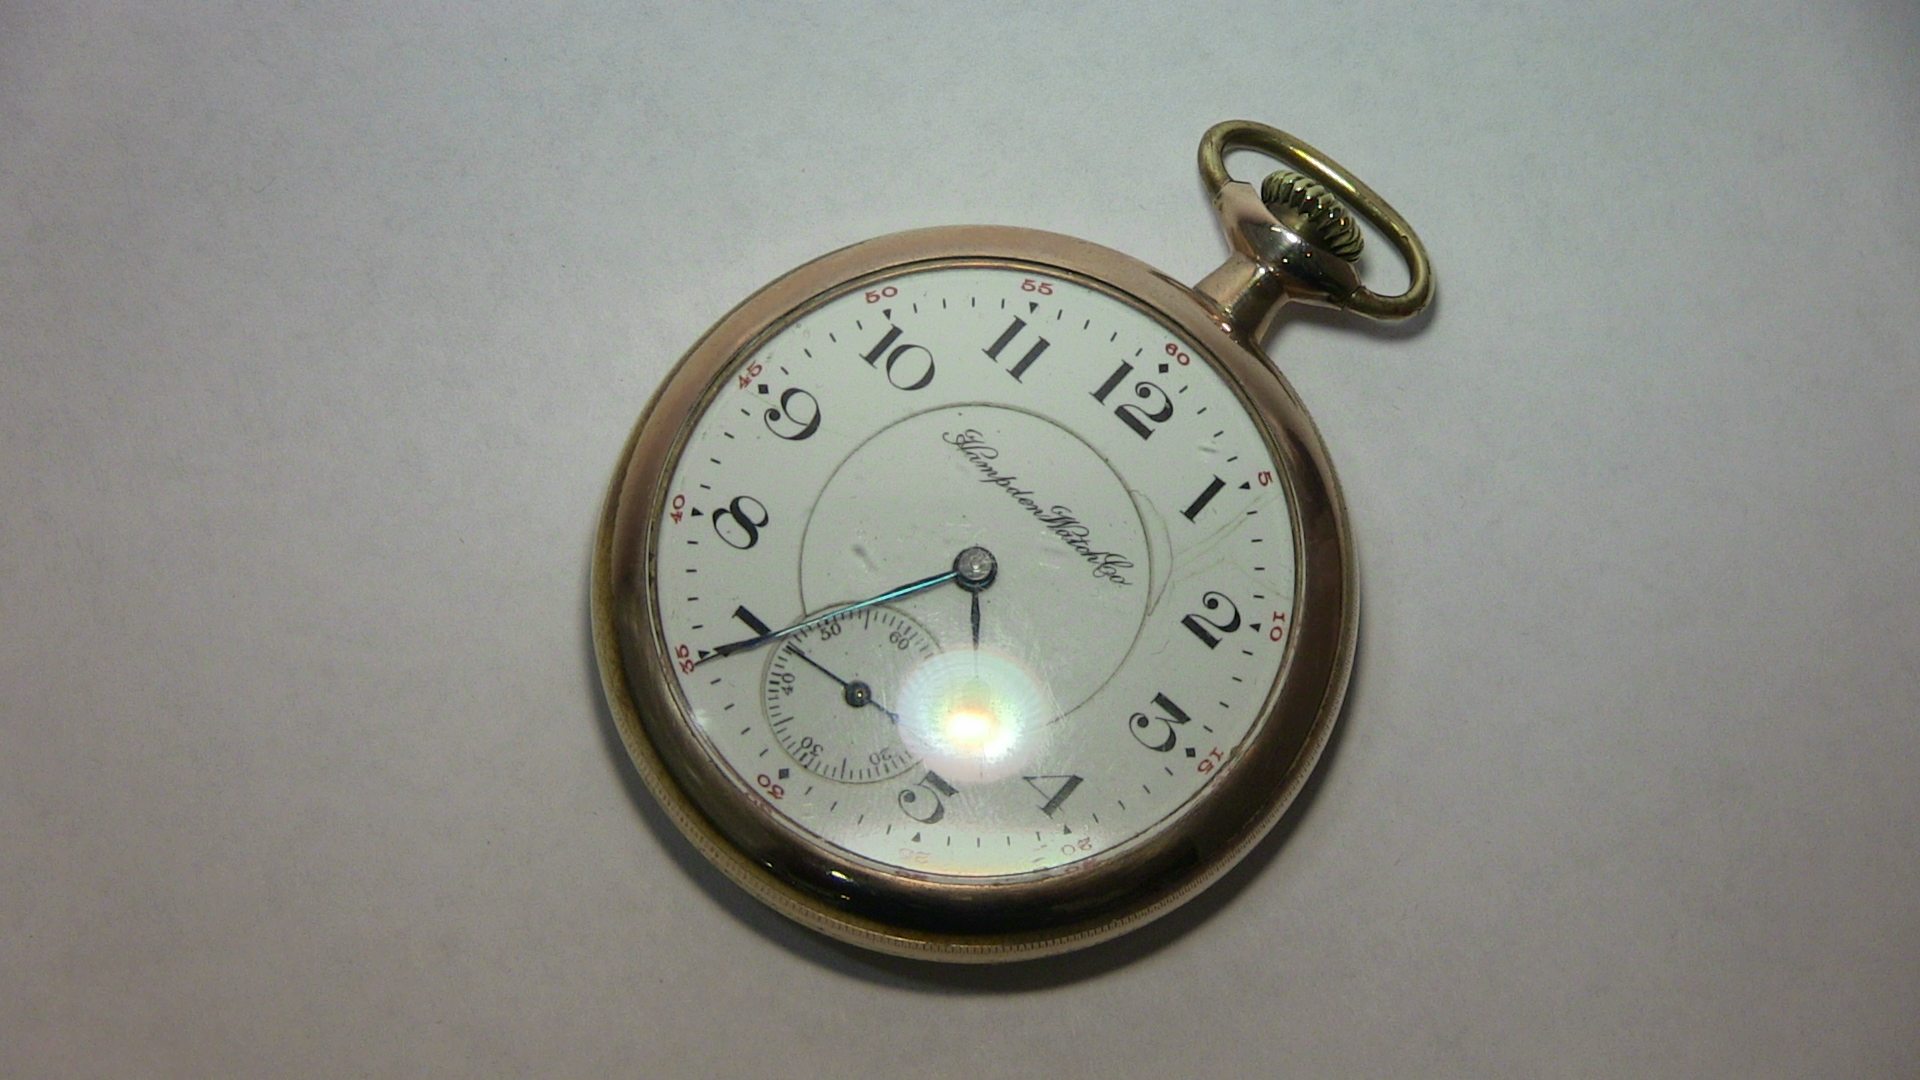 face pendant pinterest jewels images open vintage pocket best watch with lever watches on silver